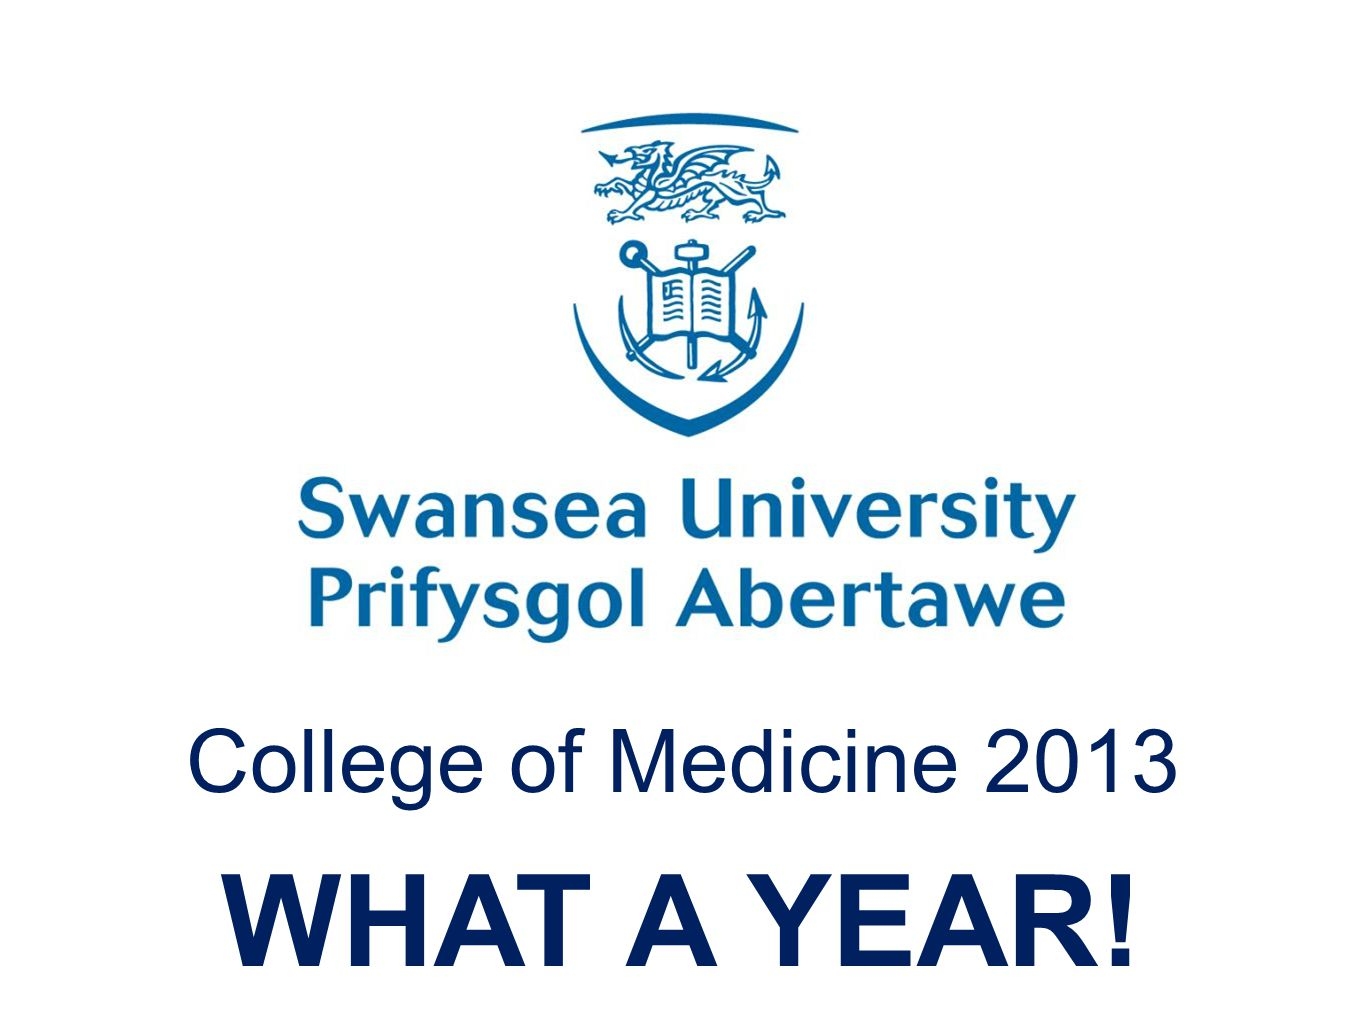 College of Medicine 2013 WHAT A YEAR!